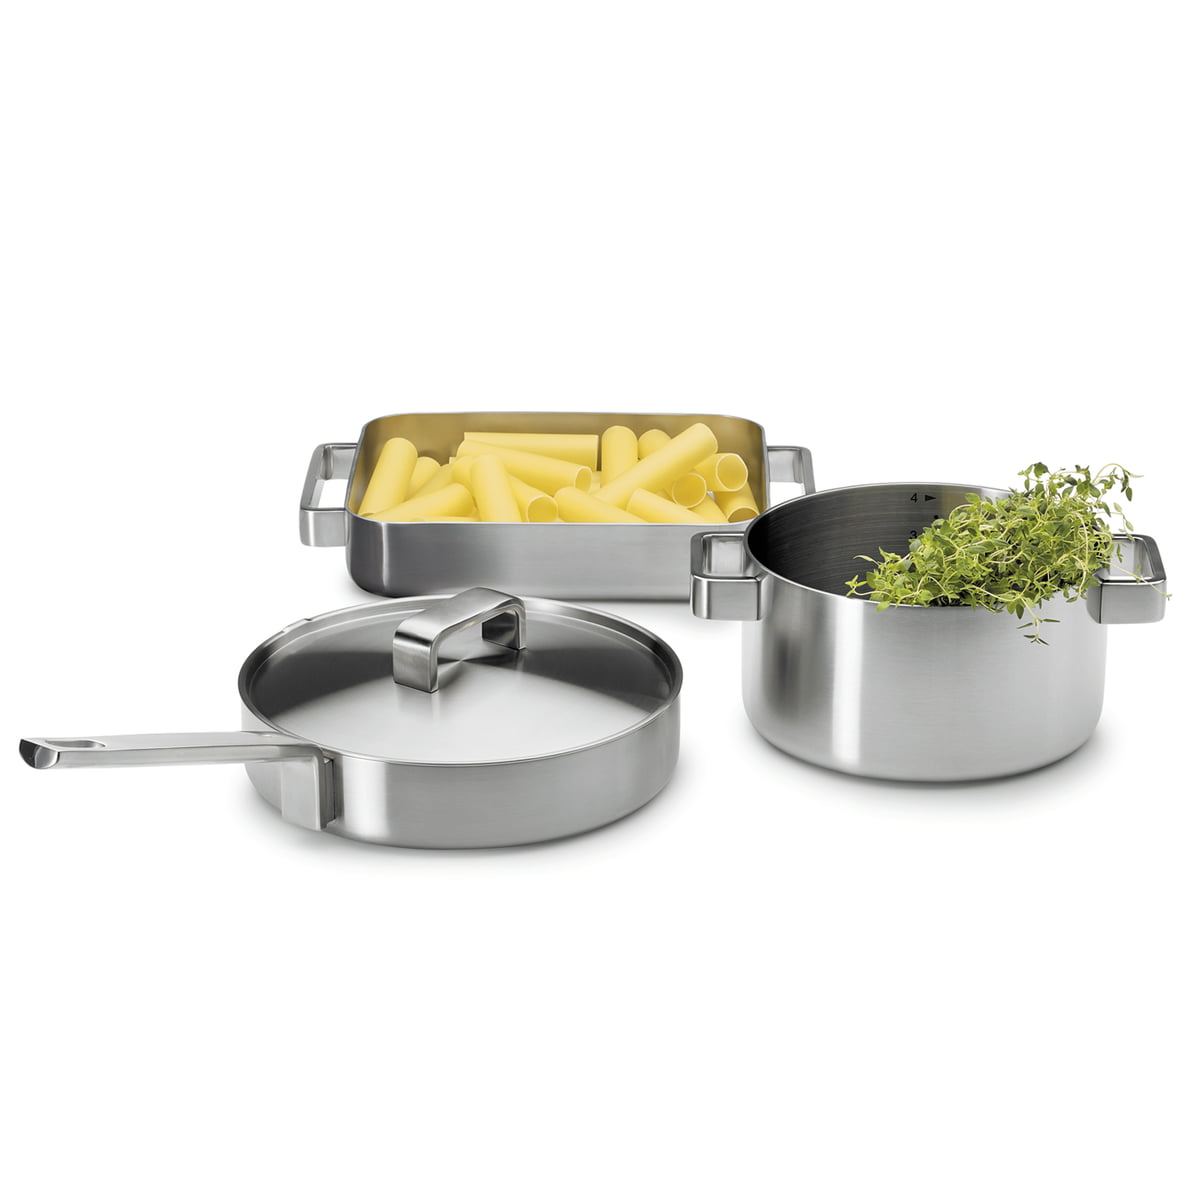 Iittala - Tools sauté pan with lid - Iittala - Tools products designed with professionals